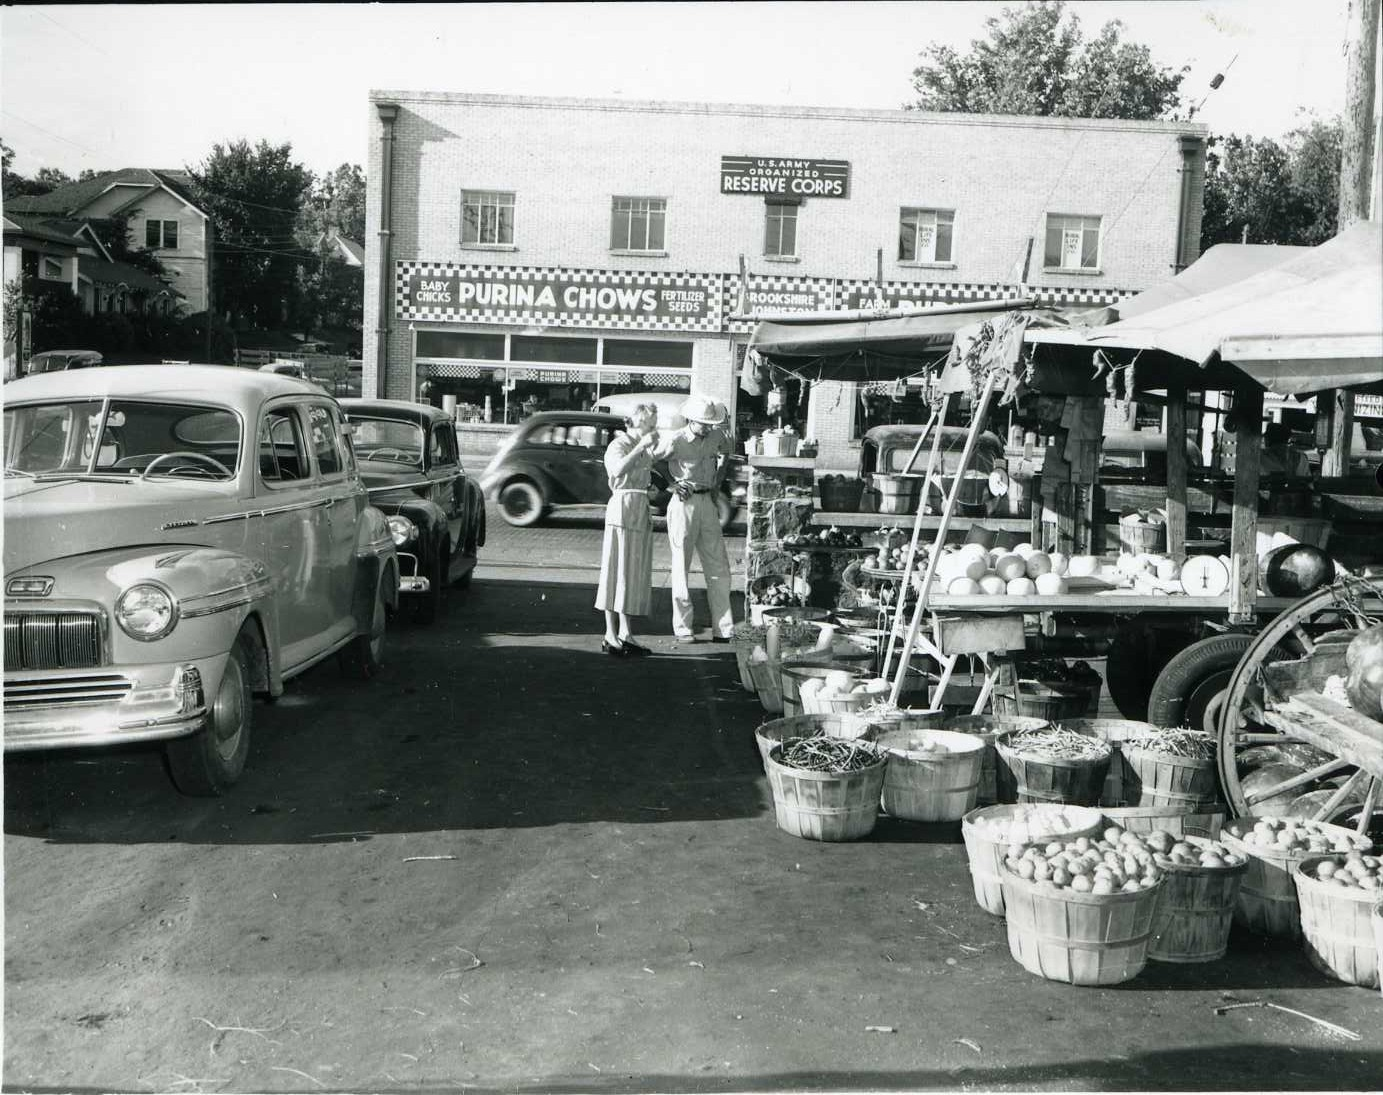 1950's car, feed store, fruits and vegetables